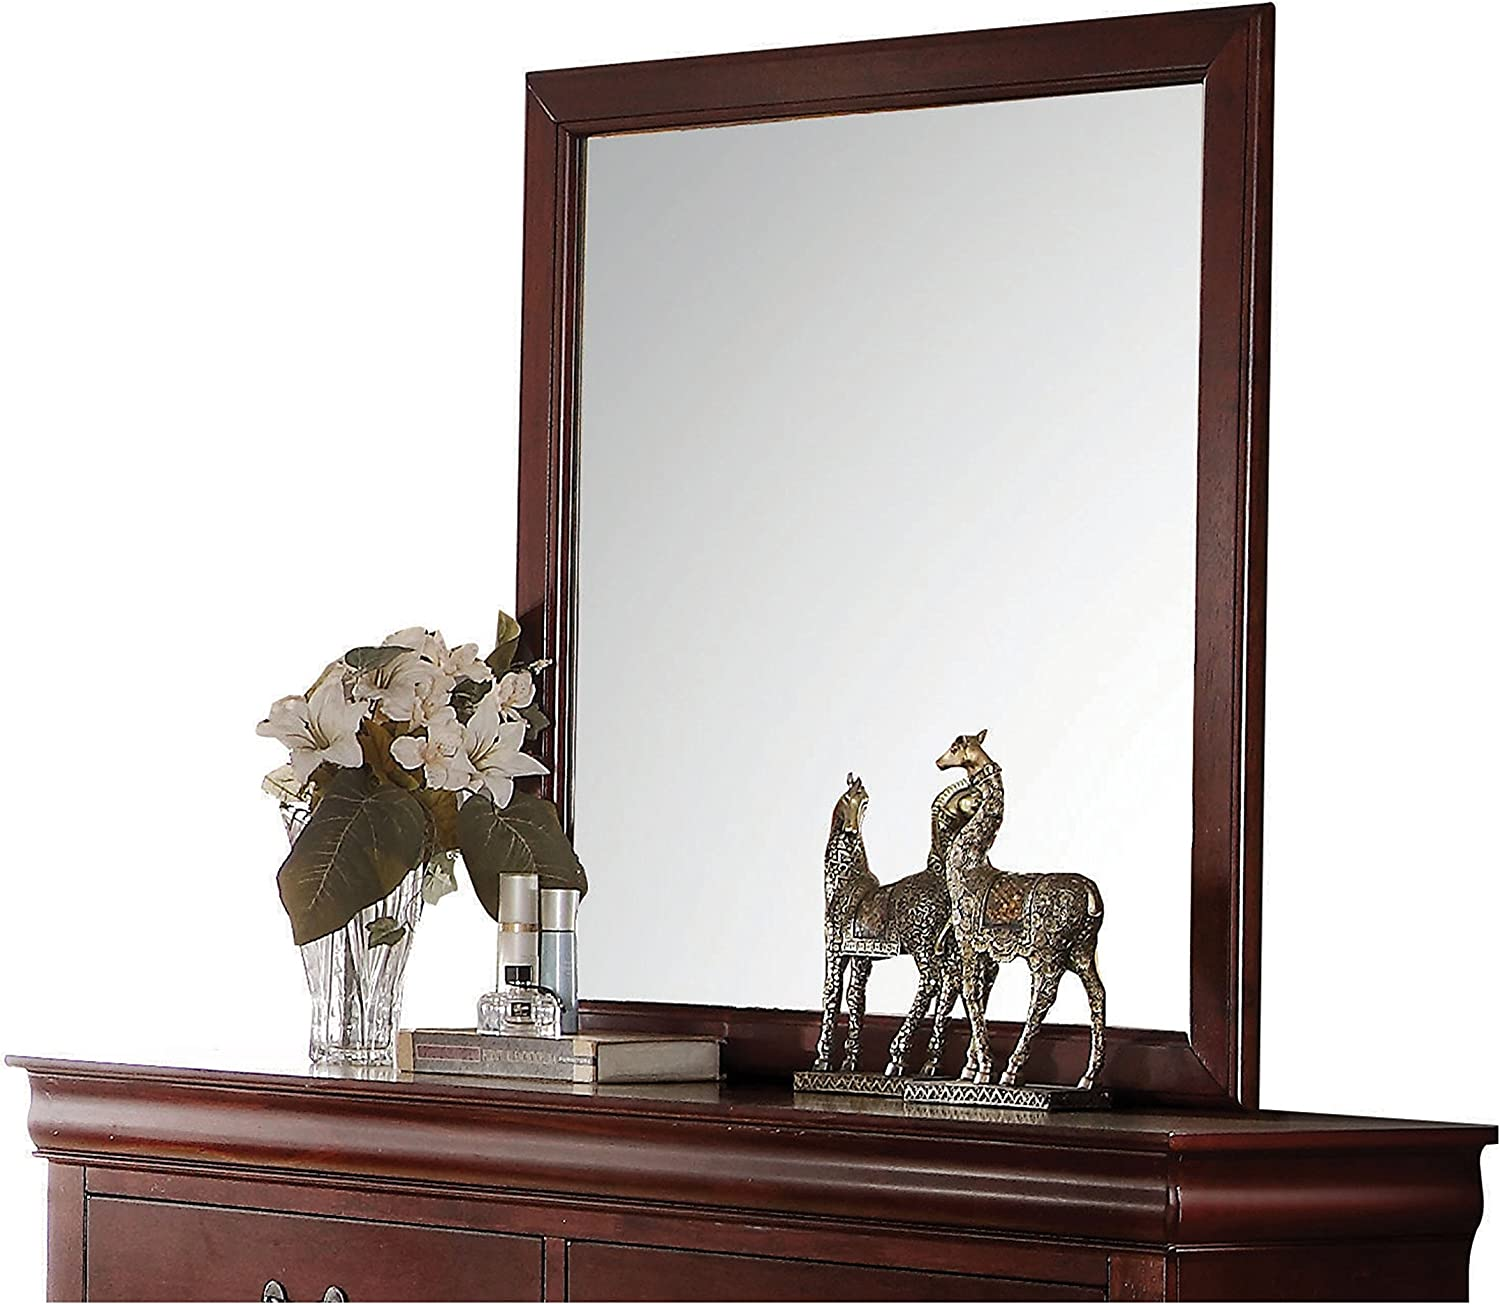 ACME Furniture 23754 Louis Philippe Mirror, Cherry